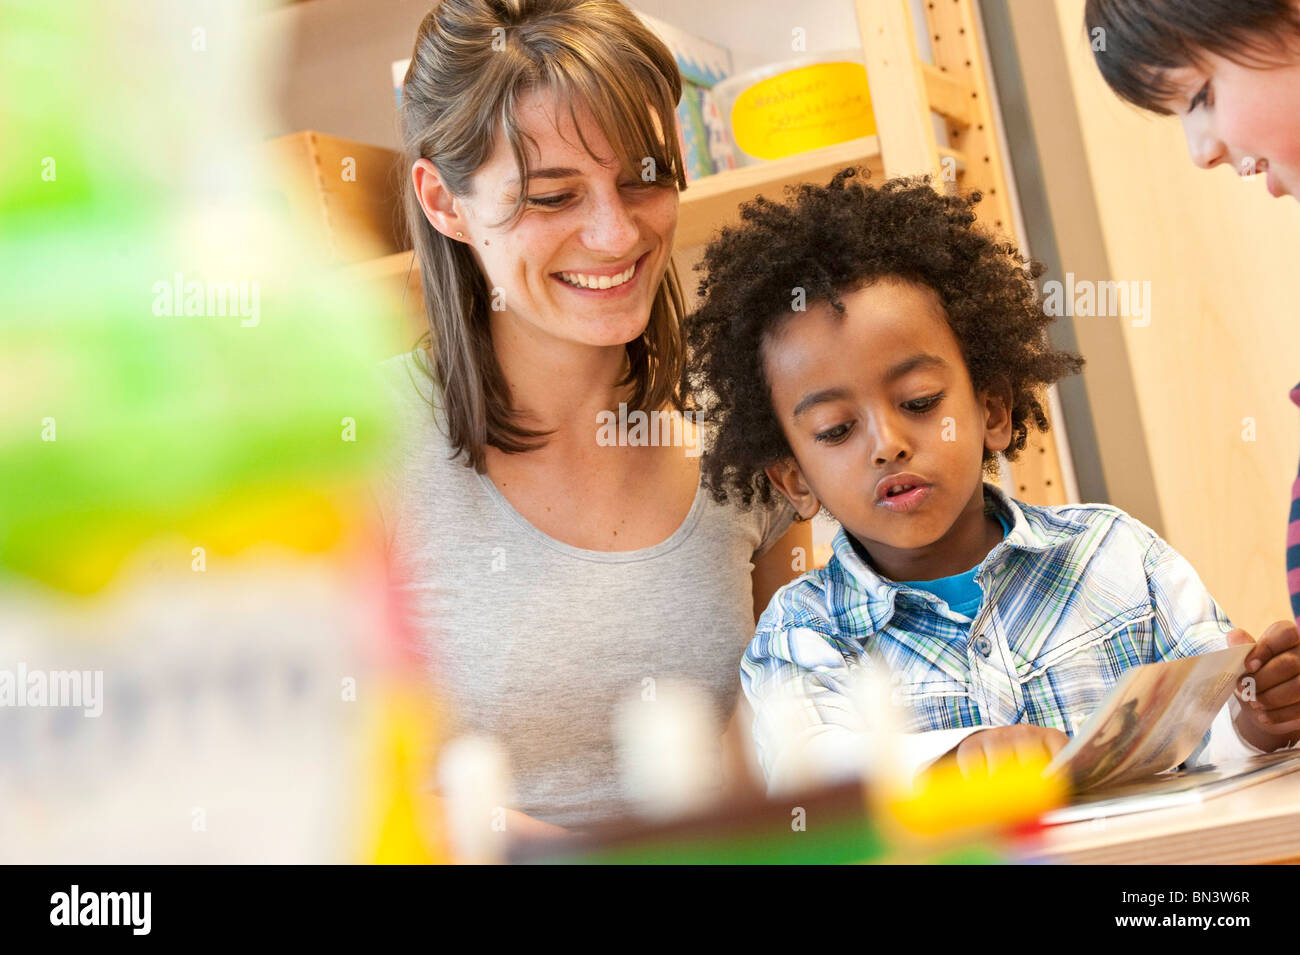 Kindergarten teacher and children looking at book, low angle view - Stock Image